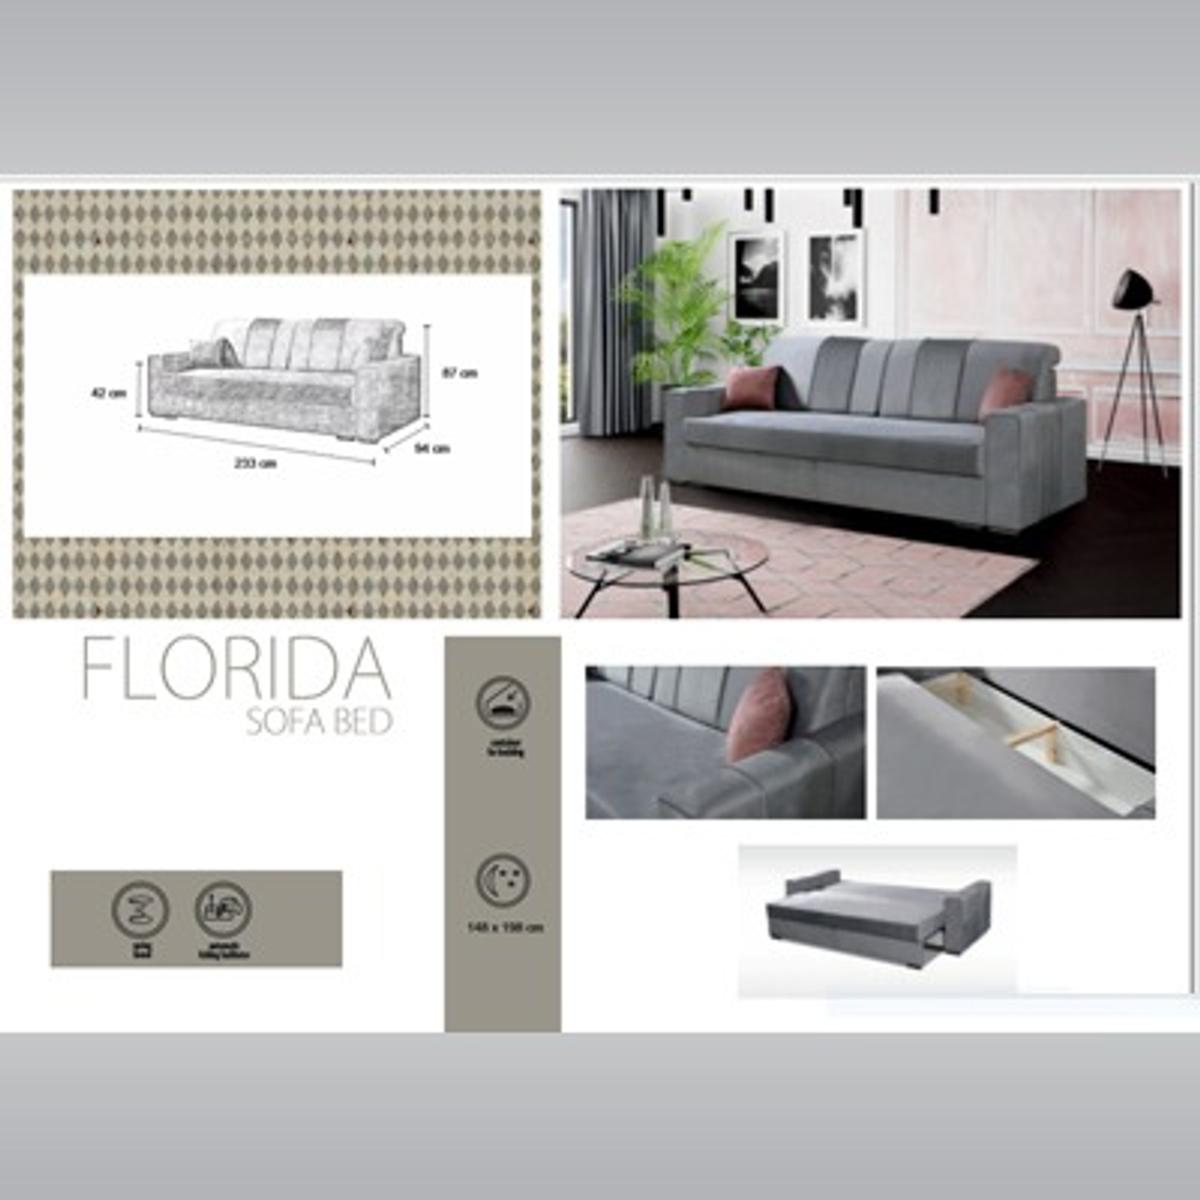 Awesome Florida Sofa Bed In M1 Manchester For 399 99 For Sale Shpock Onthecornerstone Fun Painted Chair Ideas Images Onthecornerstoneorg